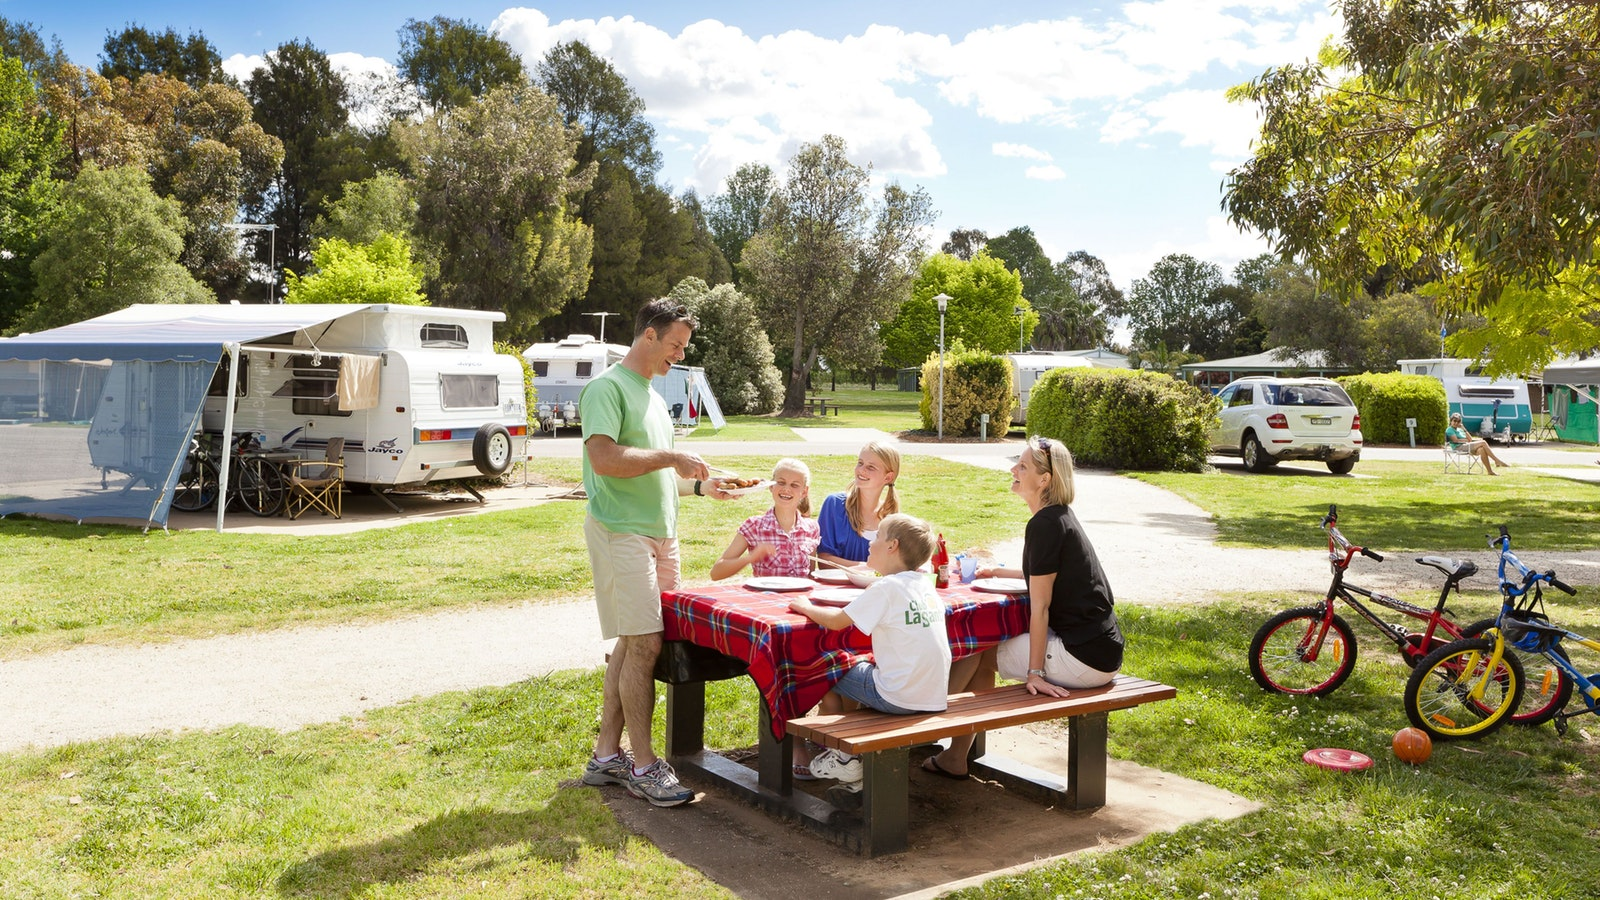 Picnic in the Caravan Park